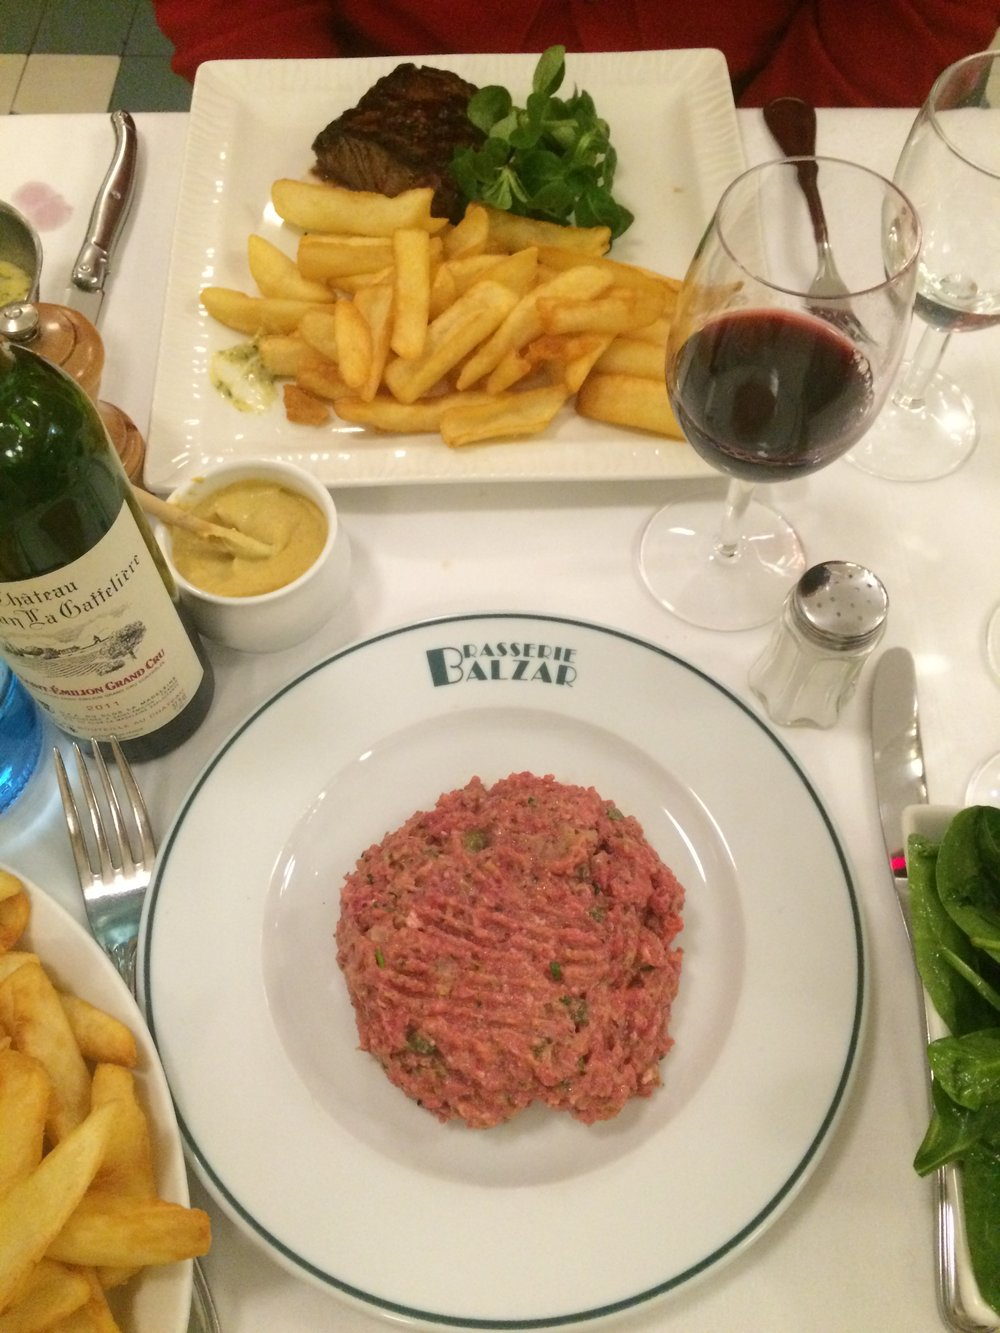 Brasserie Balzar // Alice Waters recommend the place to me as one of her favorite spots in Paris when she lived there. This old-school institution serves tasty steak frites, dover sole. Great for people watching too.